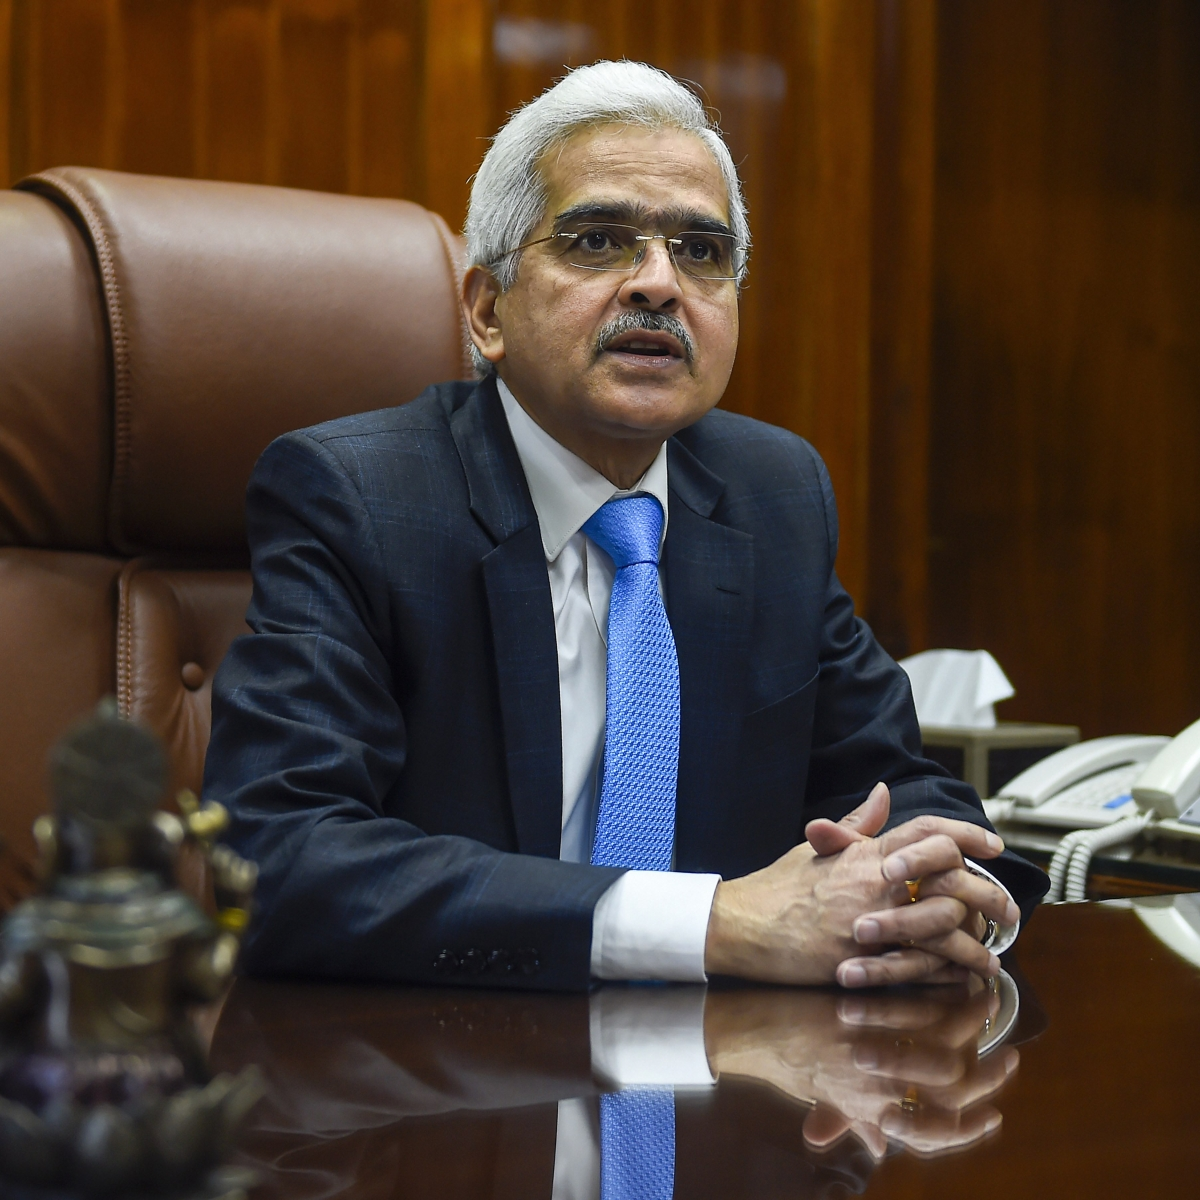 Market Update: Sensex opens over 200 points higher as RBI Governor Shaktikanta Das announces new policy